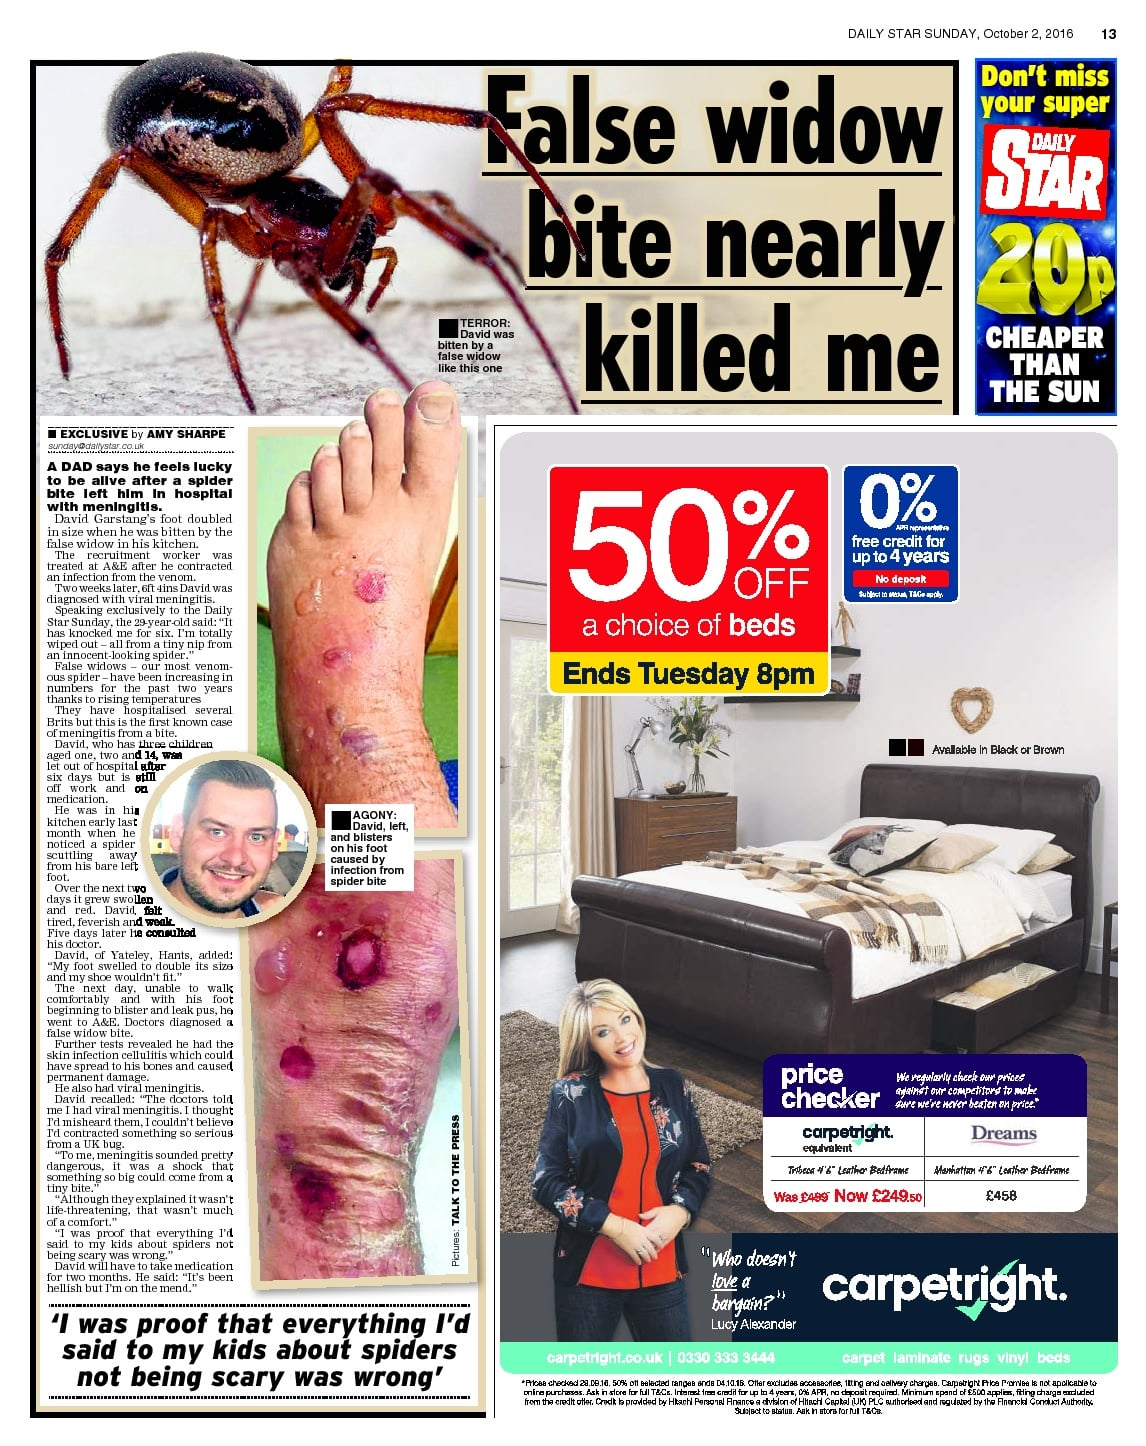 false-widow-bite-nearly-killed-me-daily-star-sunday-2-10-2016